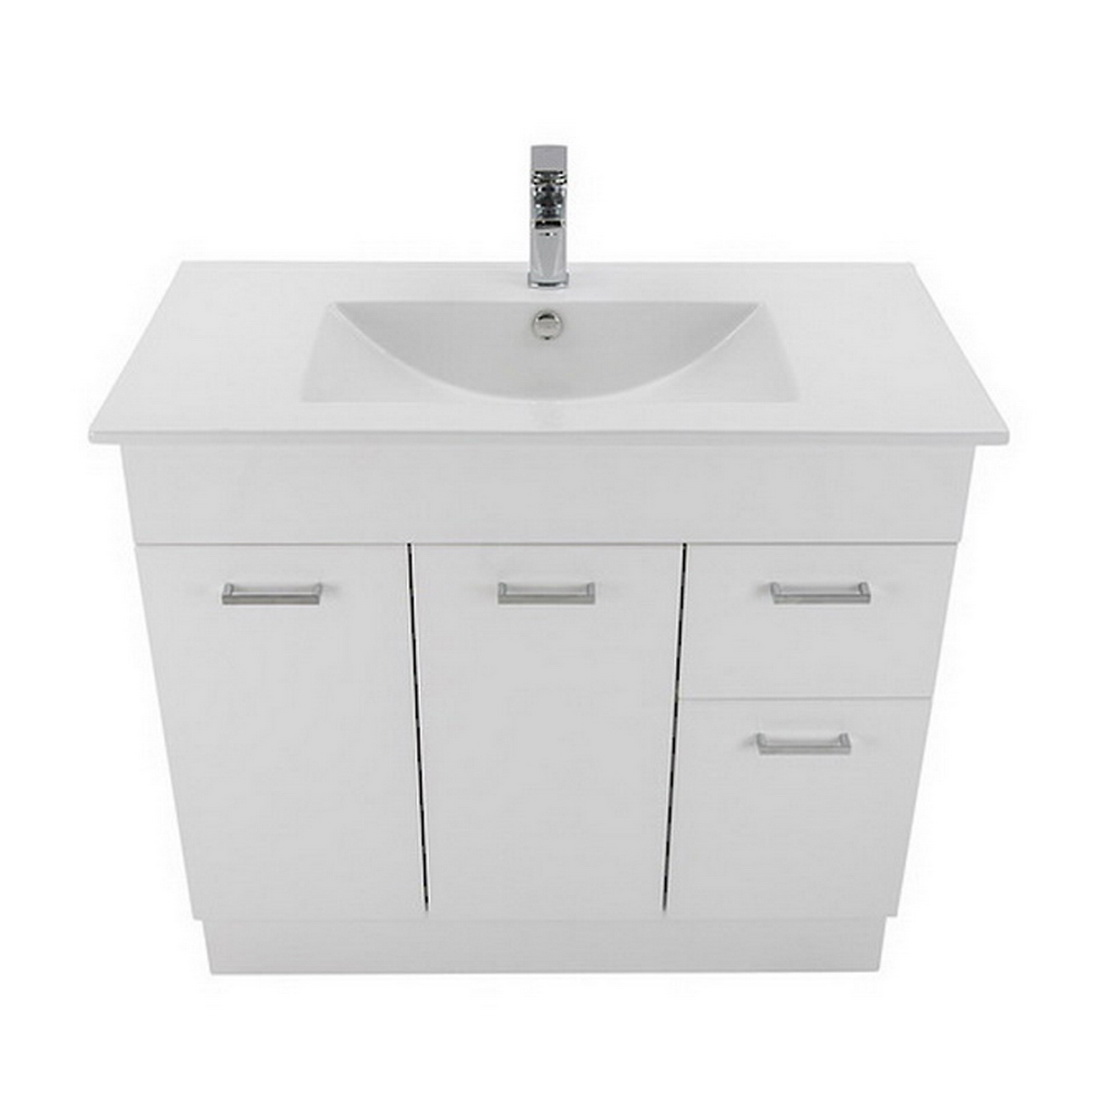 Montana Qube 2 Drawer Floorstanding Vanity 900mm Gloss White